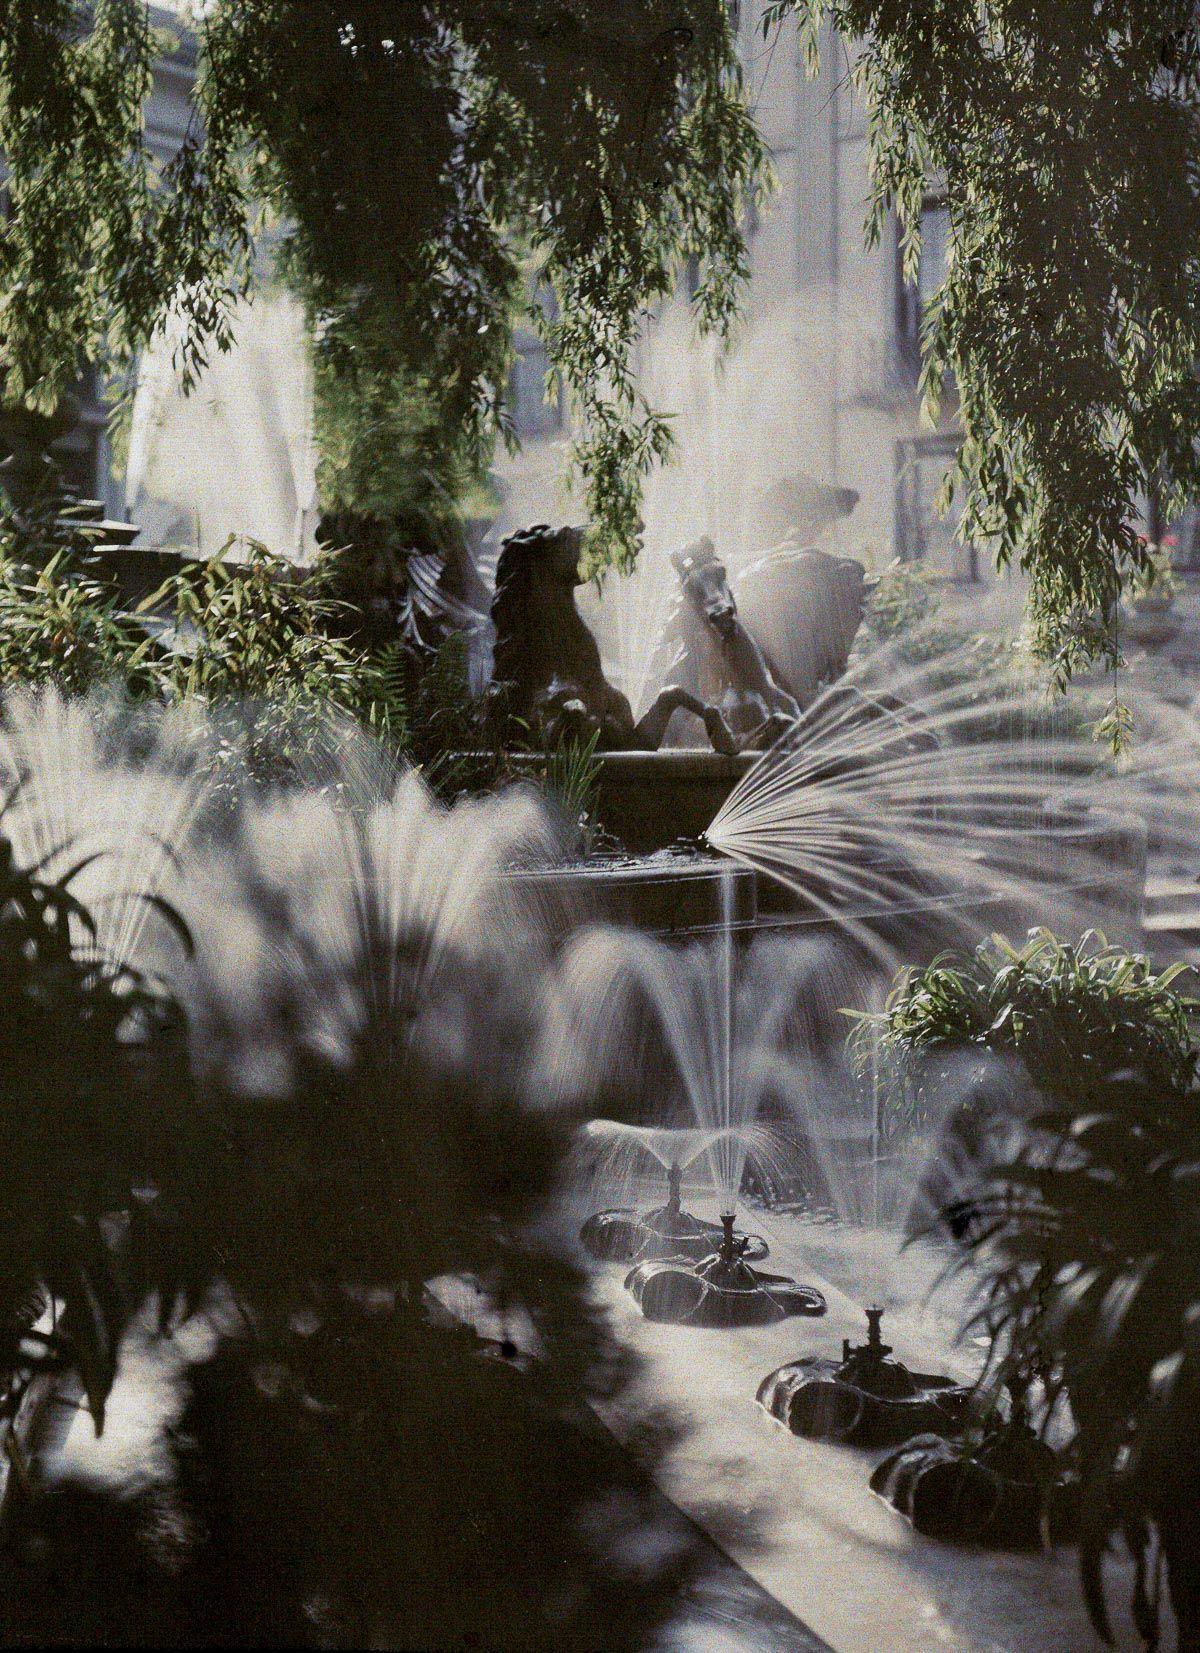 Early 1900s color photos look like literal dreams - The Neptune Fountain, Cheltenham, 1910 - John Cimon Warburg